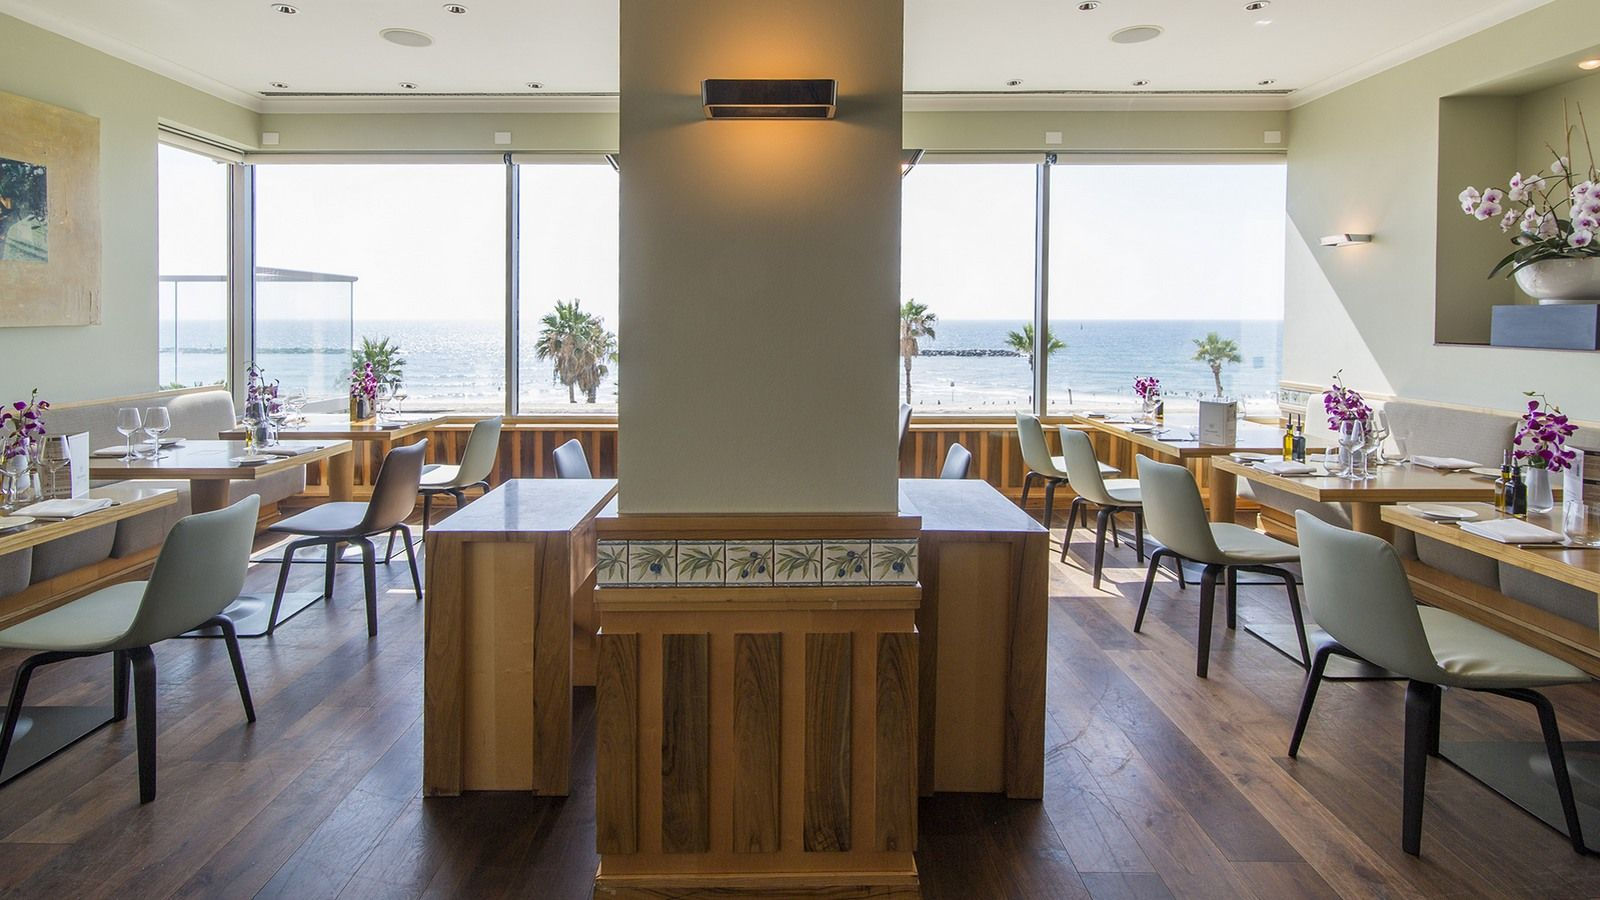 Olive Leaf Restaurant at Sheraton Tel Aviv Hotel indoor with view